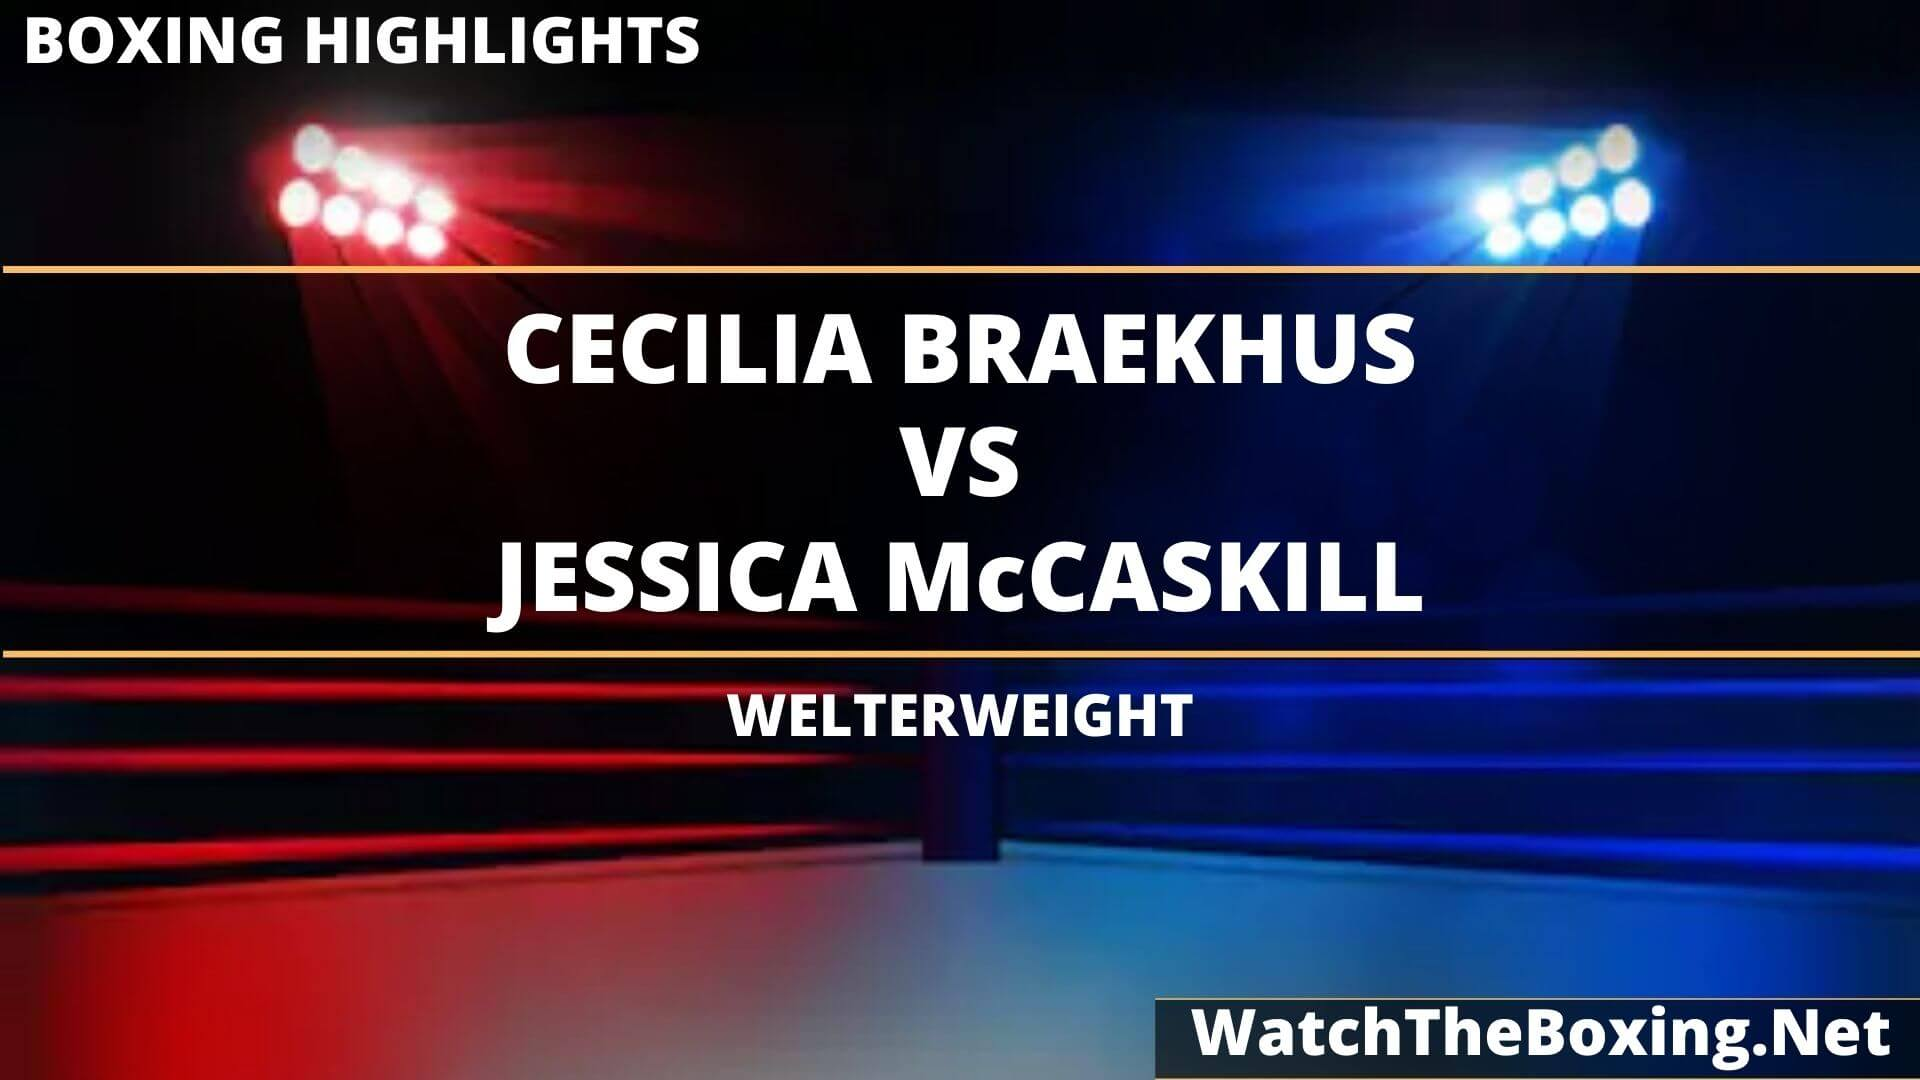 Cecilia Braekhus Vs Jessica McCaskill Highlights 2020 Welterweight